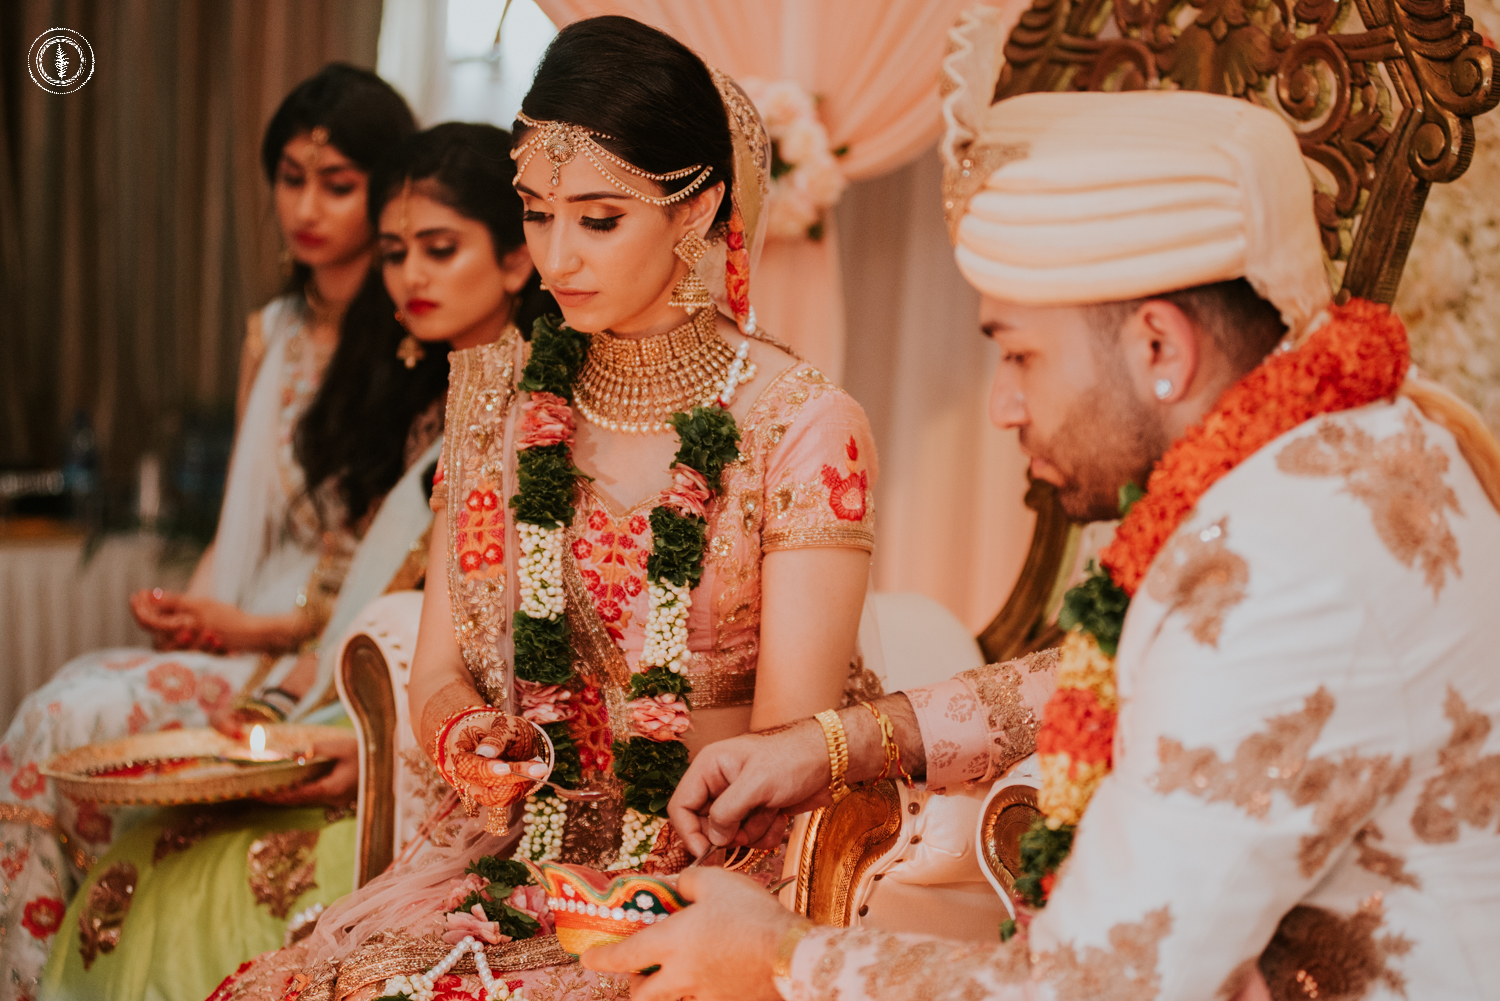 TRADITIONAL WEDDING DAY - Mehndi night, Kahtu, Sangeet night & Shantak (Puja Ceremony) Hereafter we are in the wedding day of this beautiful couple